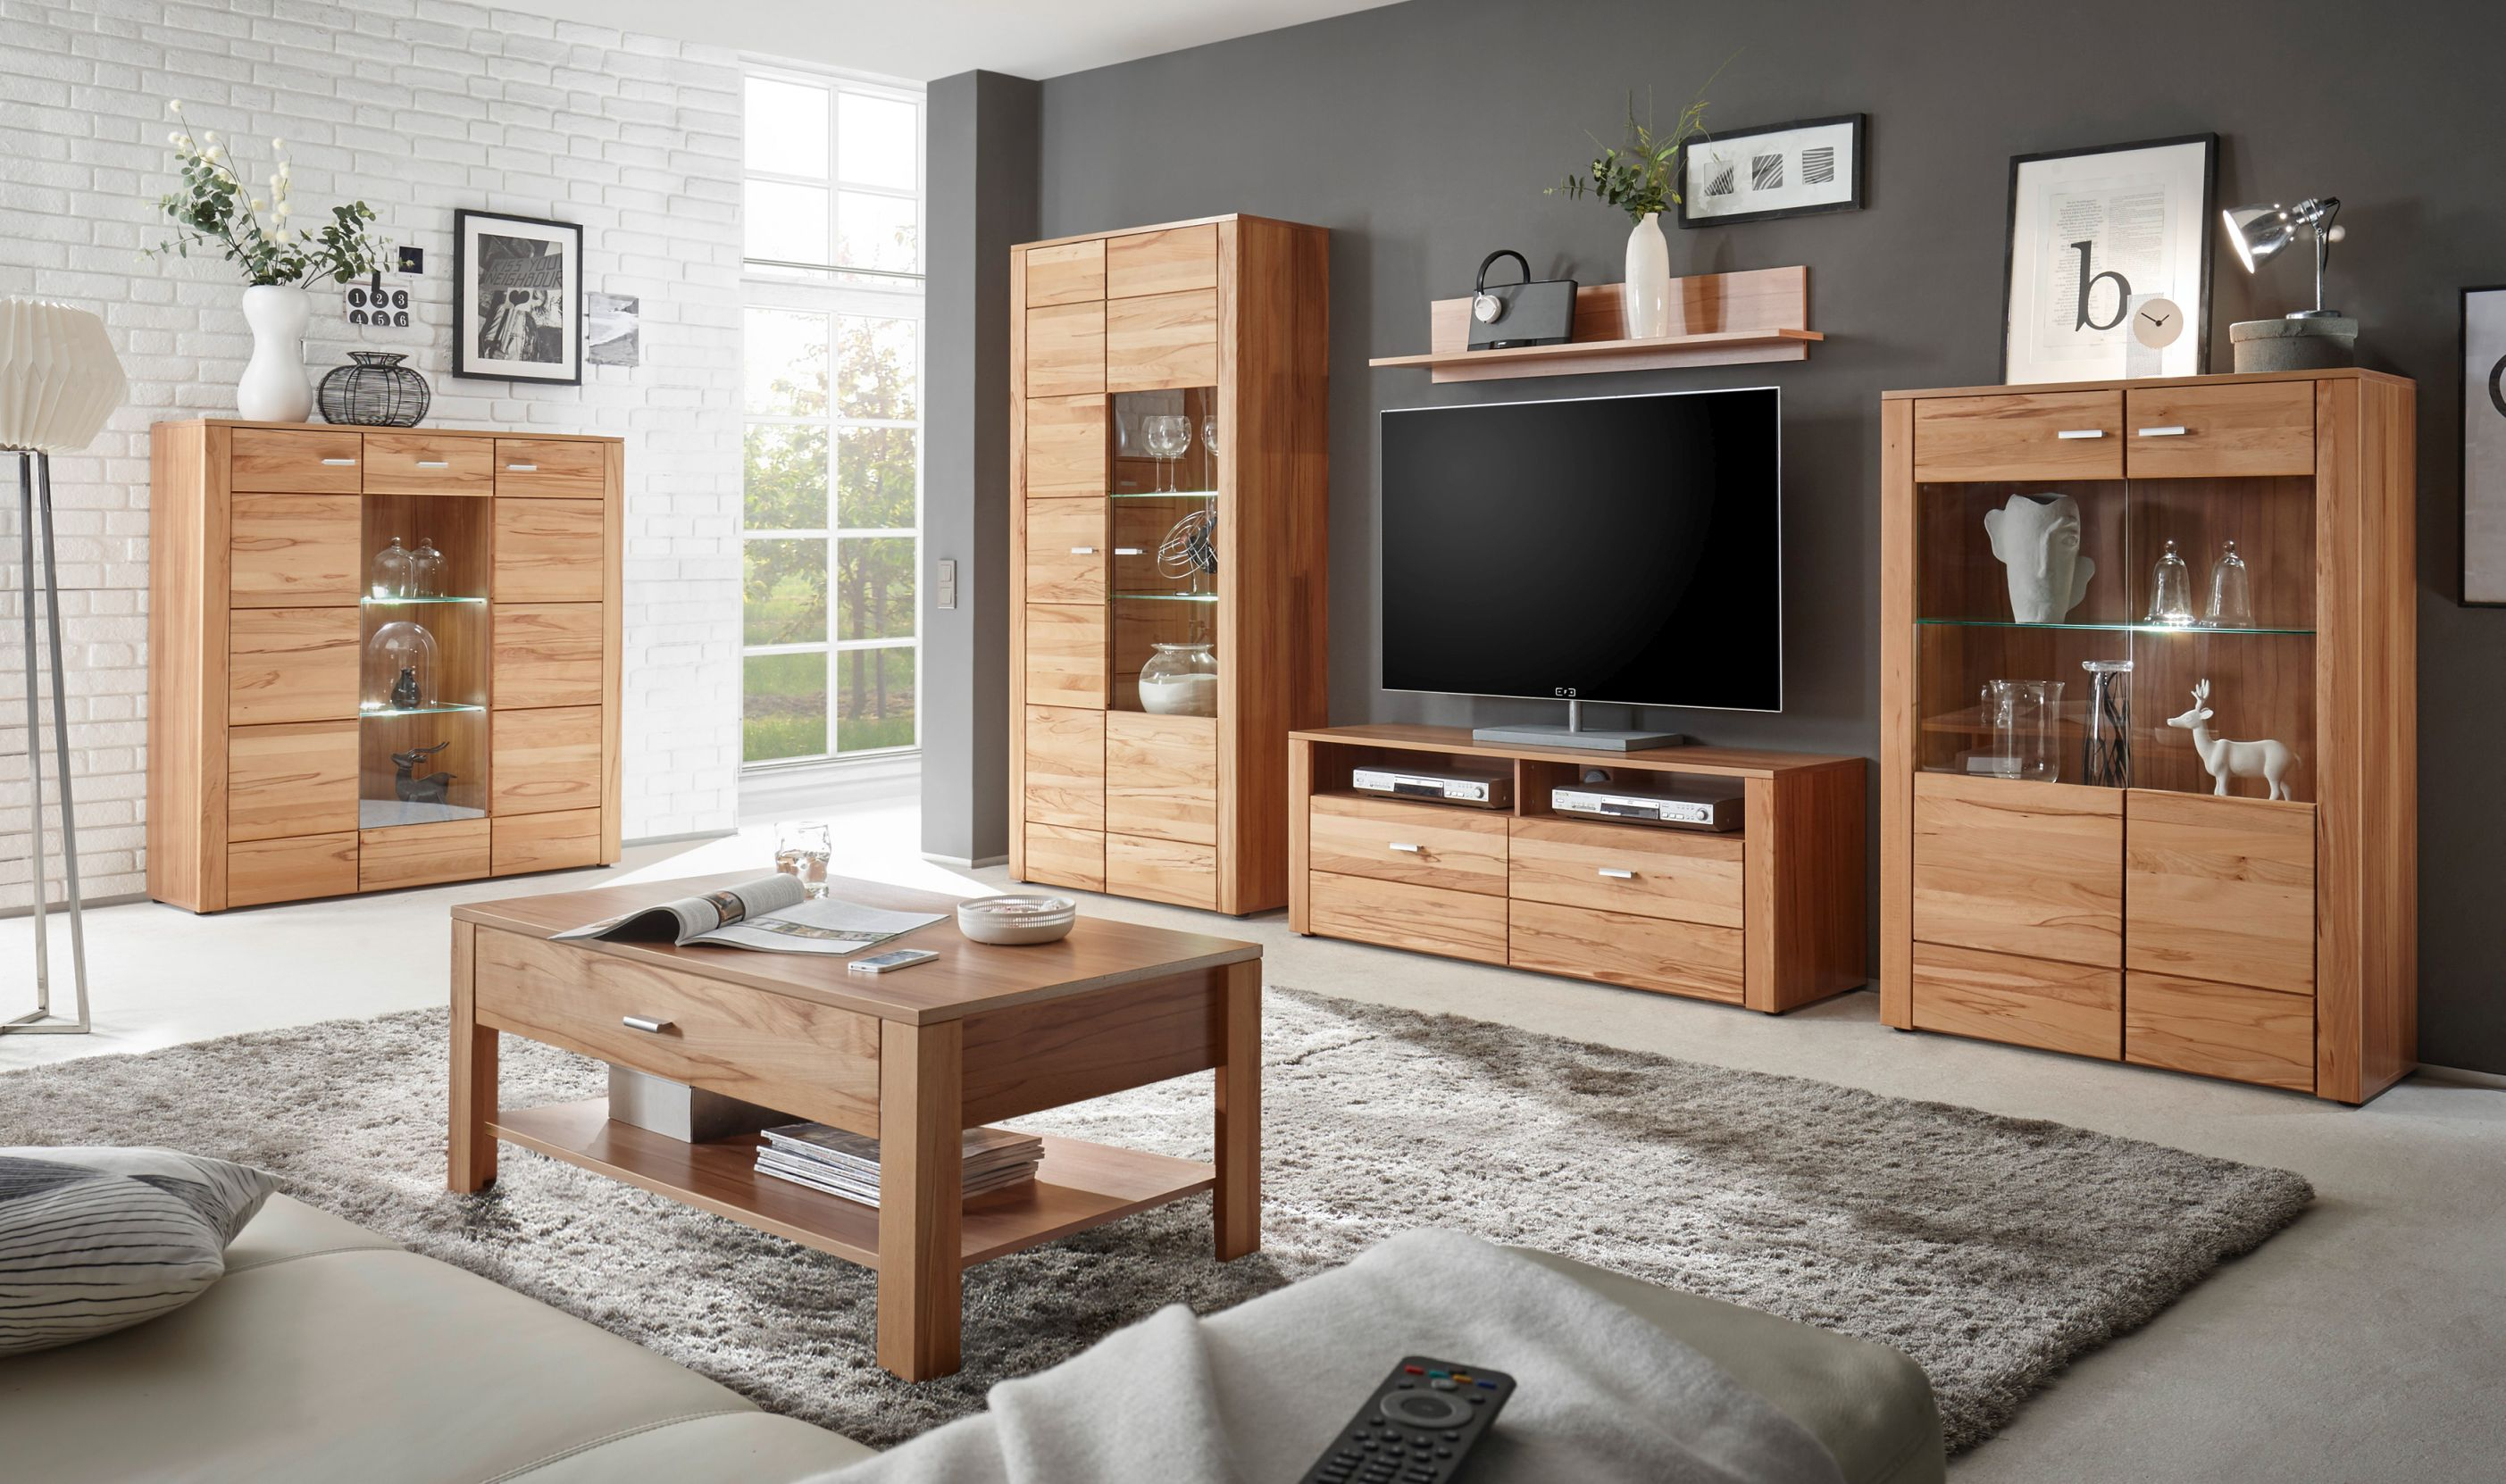 wohnwand wohnzimmer set donau 5 tlg stauraumelement. Black Bedroom Furniture Sets. Home Design Ideas